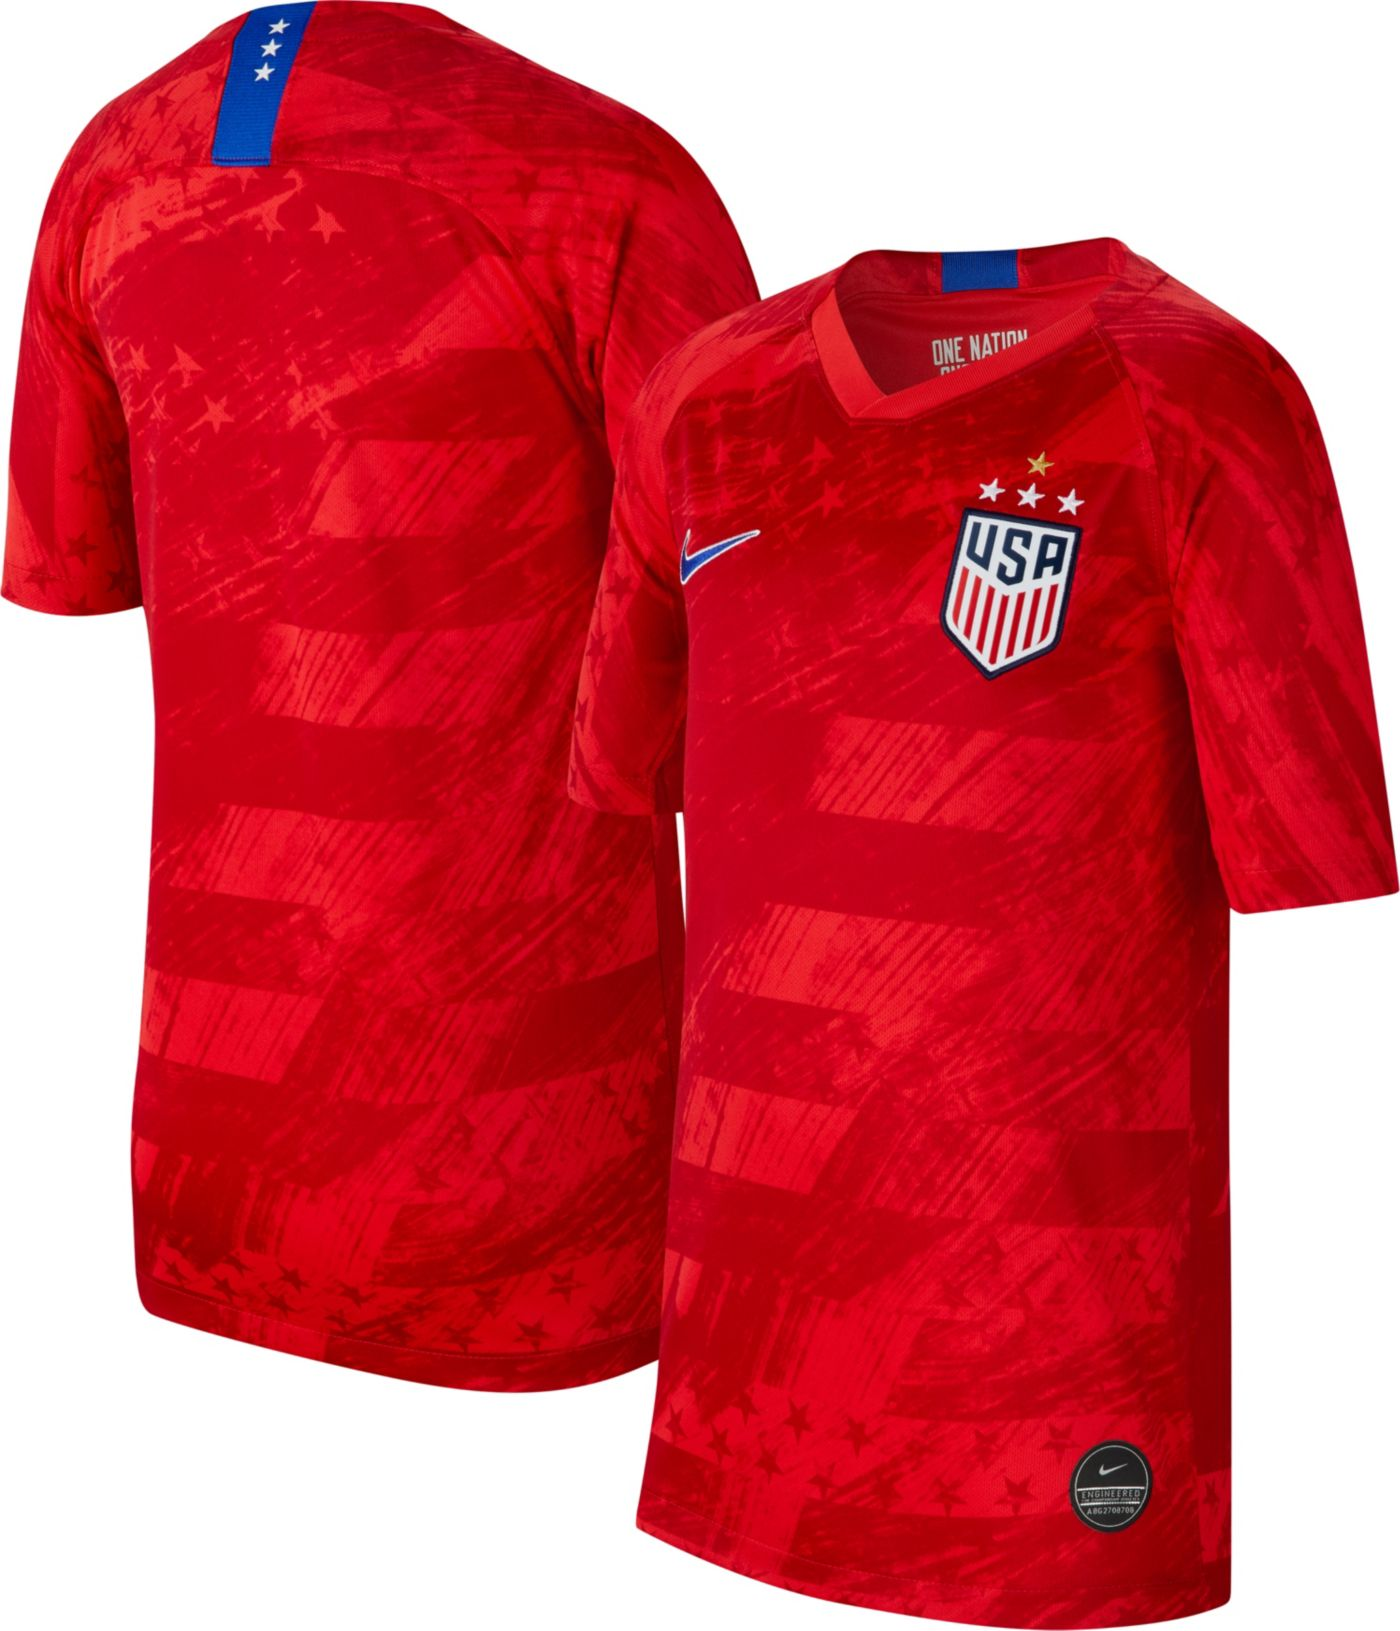 Nike Youth 2019 FIFA Women's World Cup USA Soccer 4-Star Breathe Stadium Away Replica Jersey